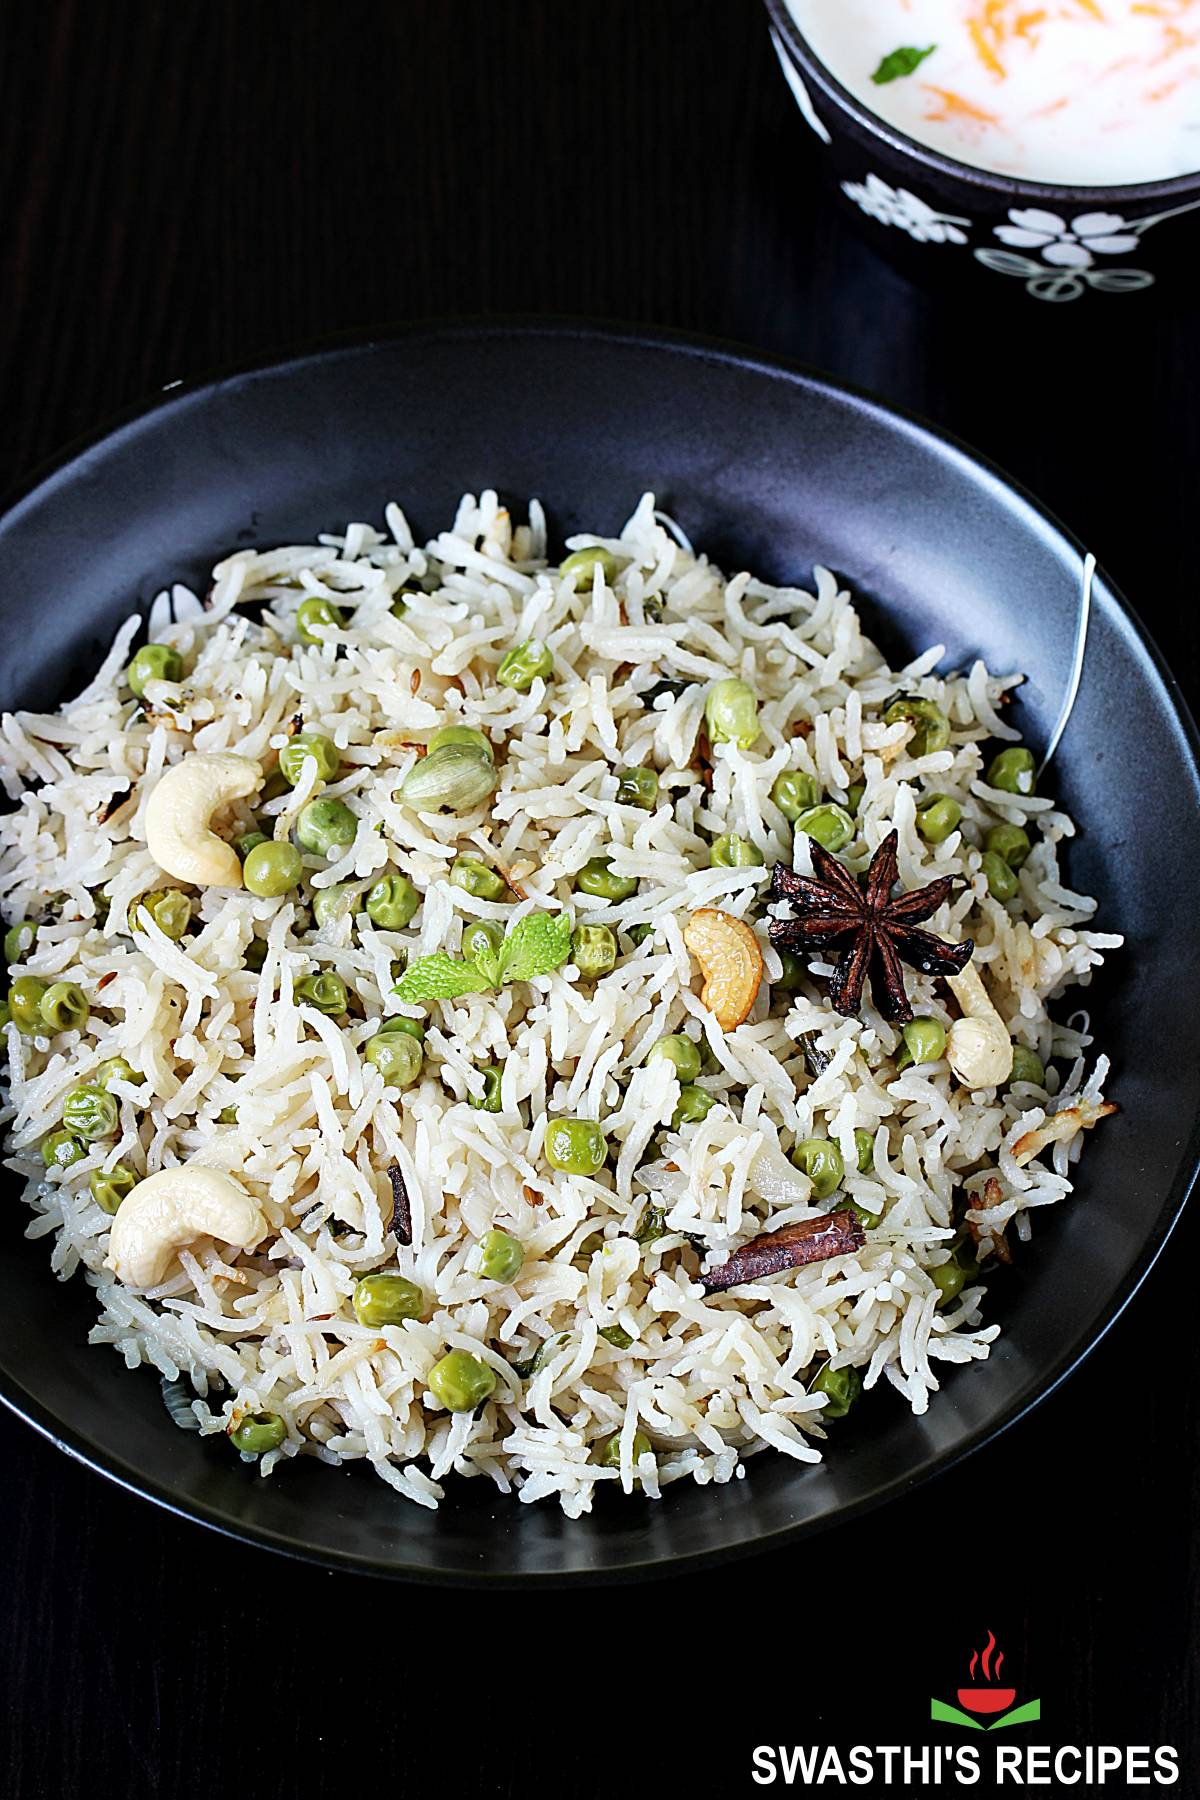 peas pulao also known as matar pulao served in a black plate